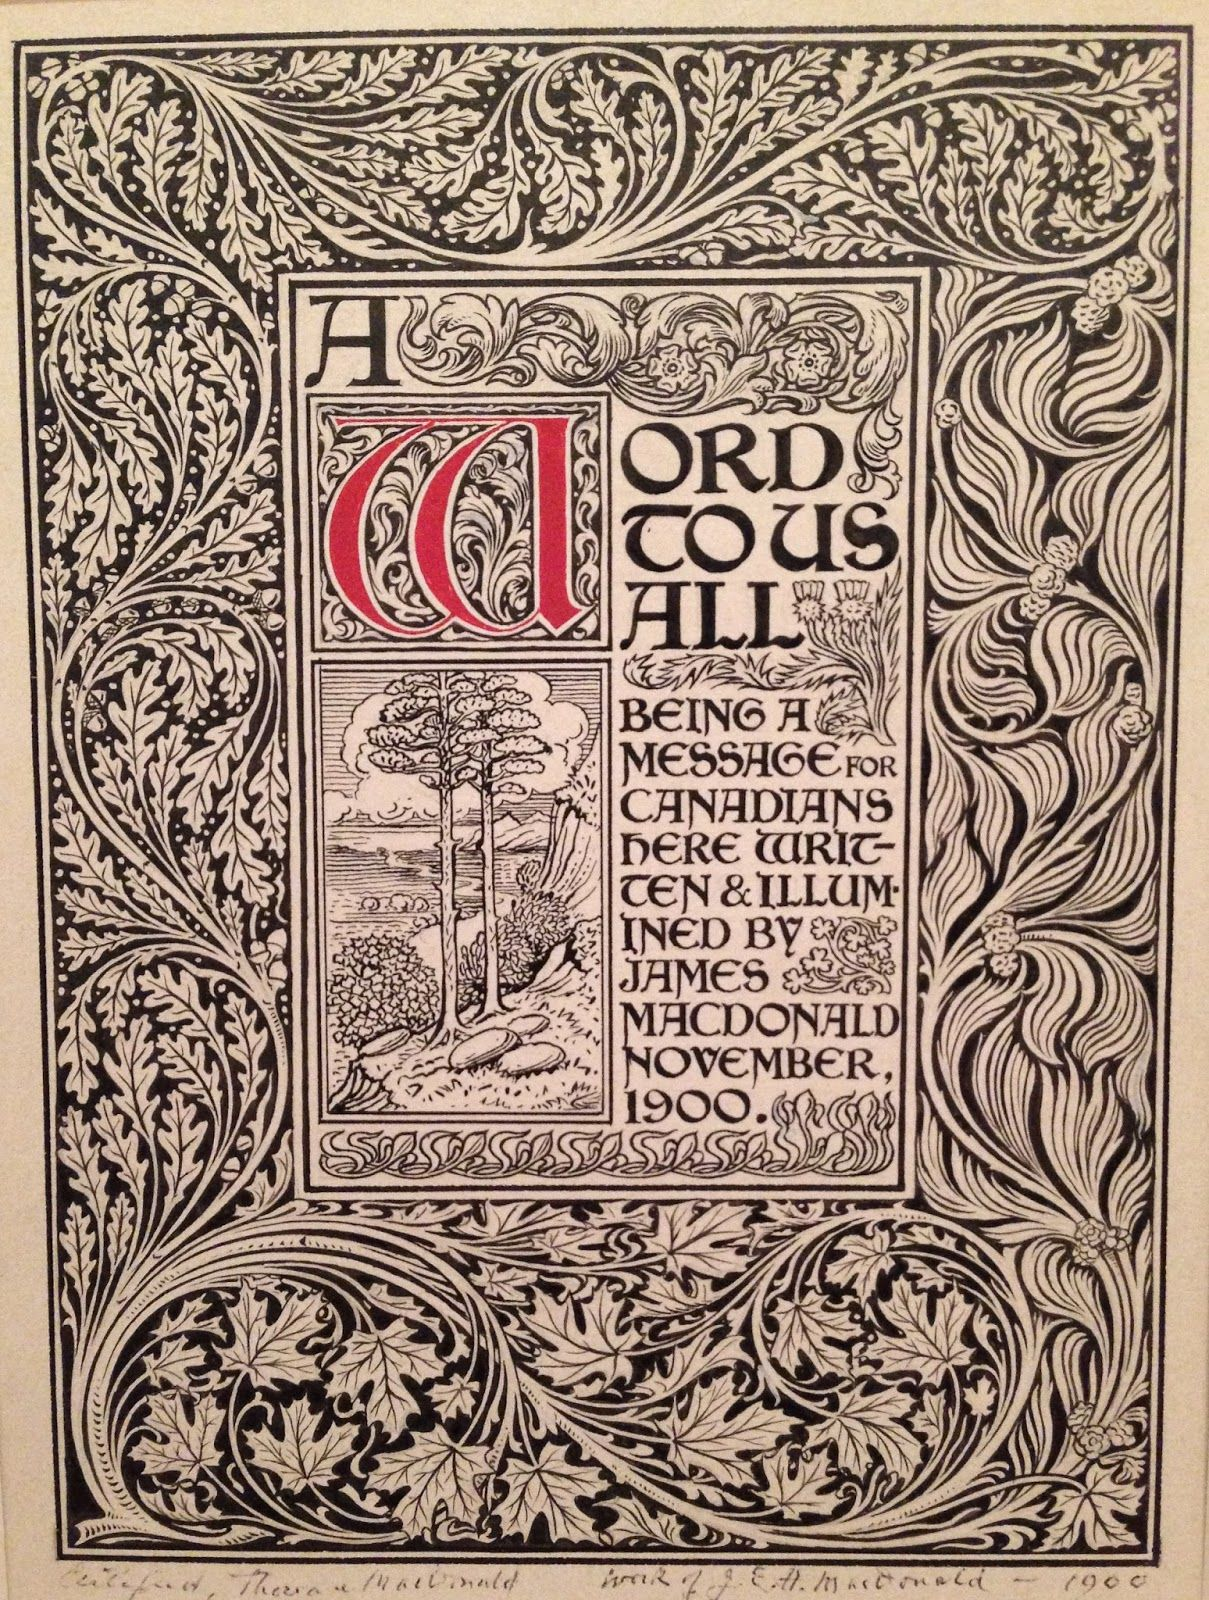 Illustrated By J E H Macdonald Ornamentation And Calligraphy In 1900 Ink And Goua Arts And Crafts Interiors Summer Arts And Crafts Arts And Crafts Furniture